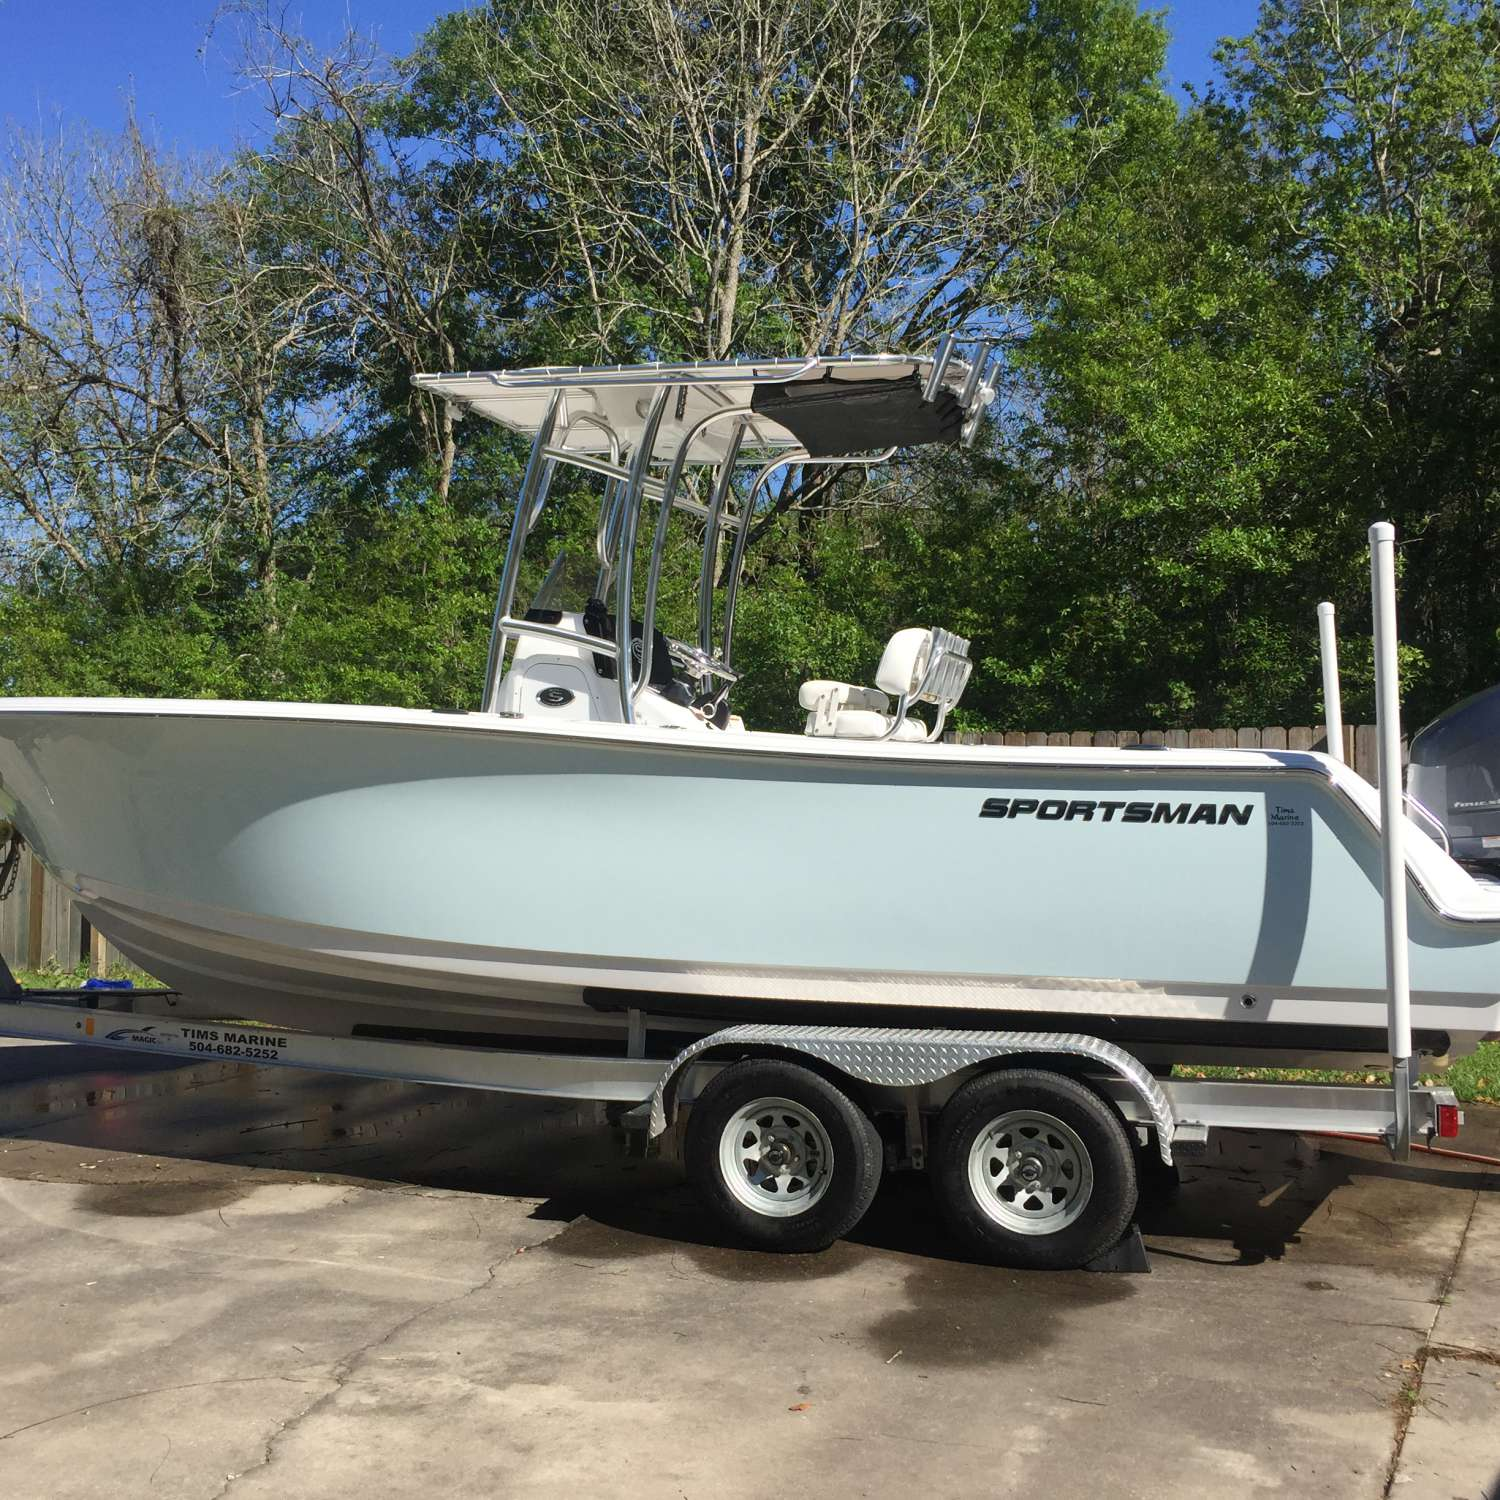 Title: Squeaky Clean - On board their Sportsman Open 232 Center Console - Location: Saint Martinville, Louisiana. Participating in the Photo Contest #SportsmanApril2016